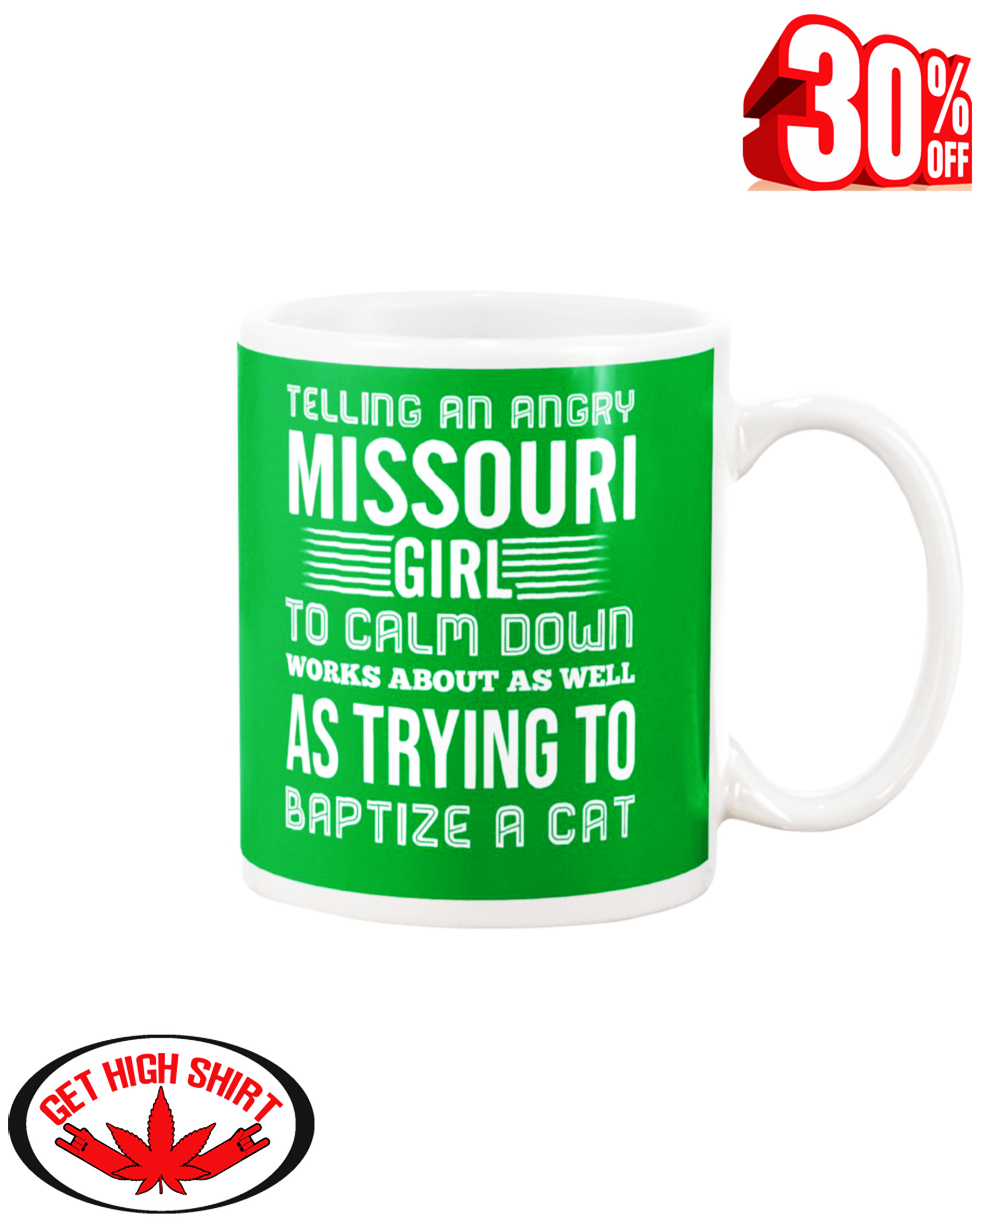 Telling an angry Missouri girl to calm down works about as well as trying to baptize a cat mug - kelly